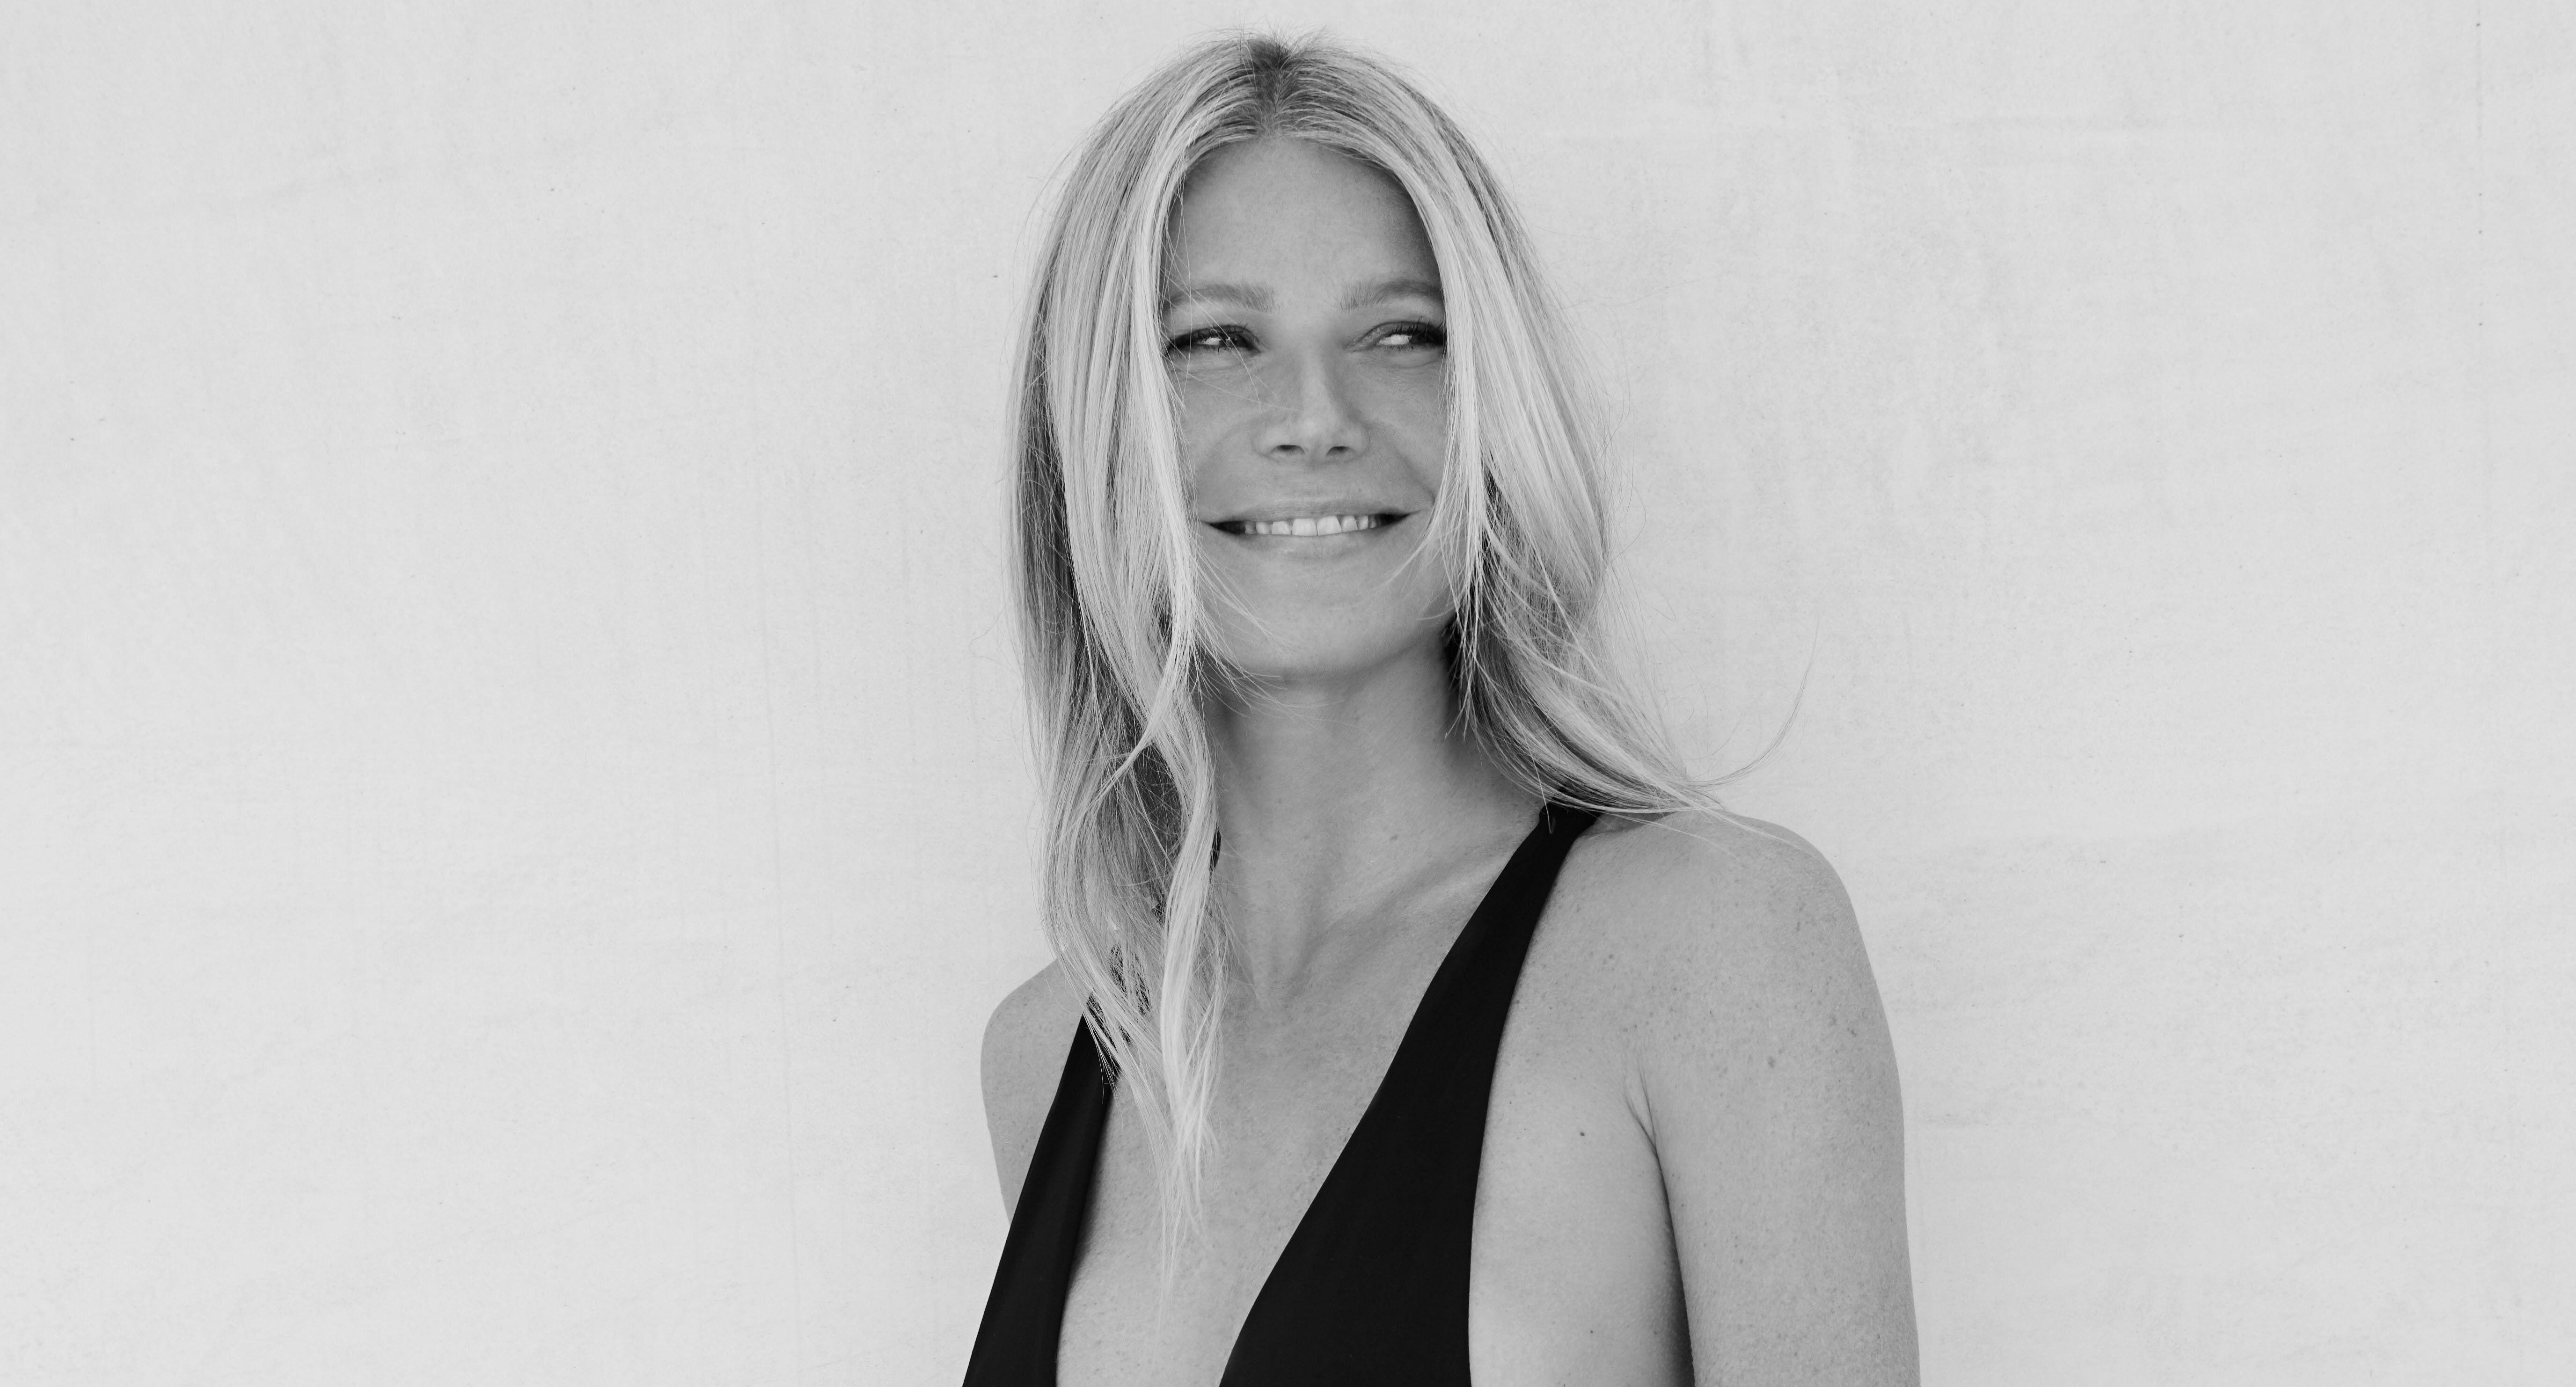 4a3bcd141df Gwyneth Paltrow, 46, models bikini for her new swimsuit range: 'This is the  mom bod I want'